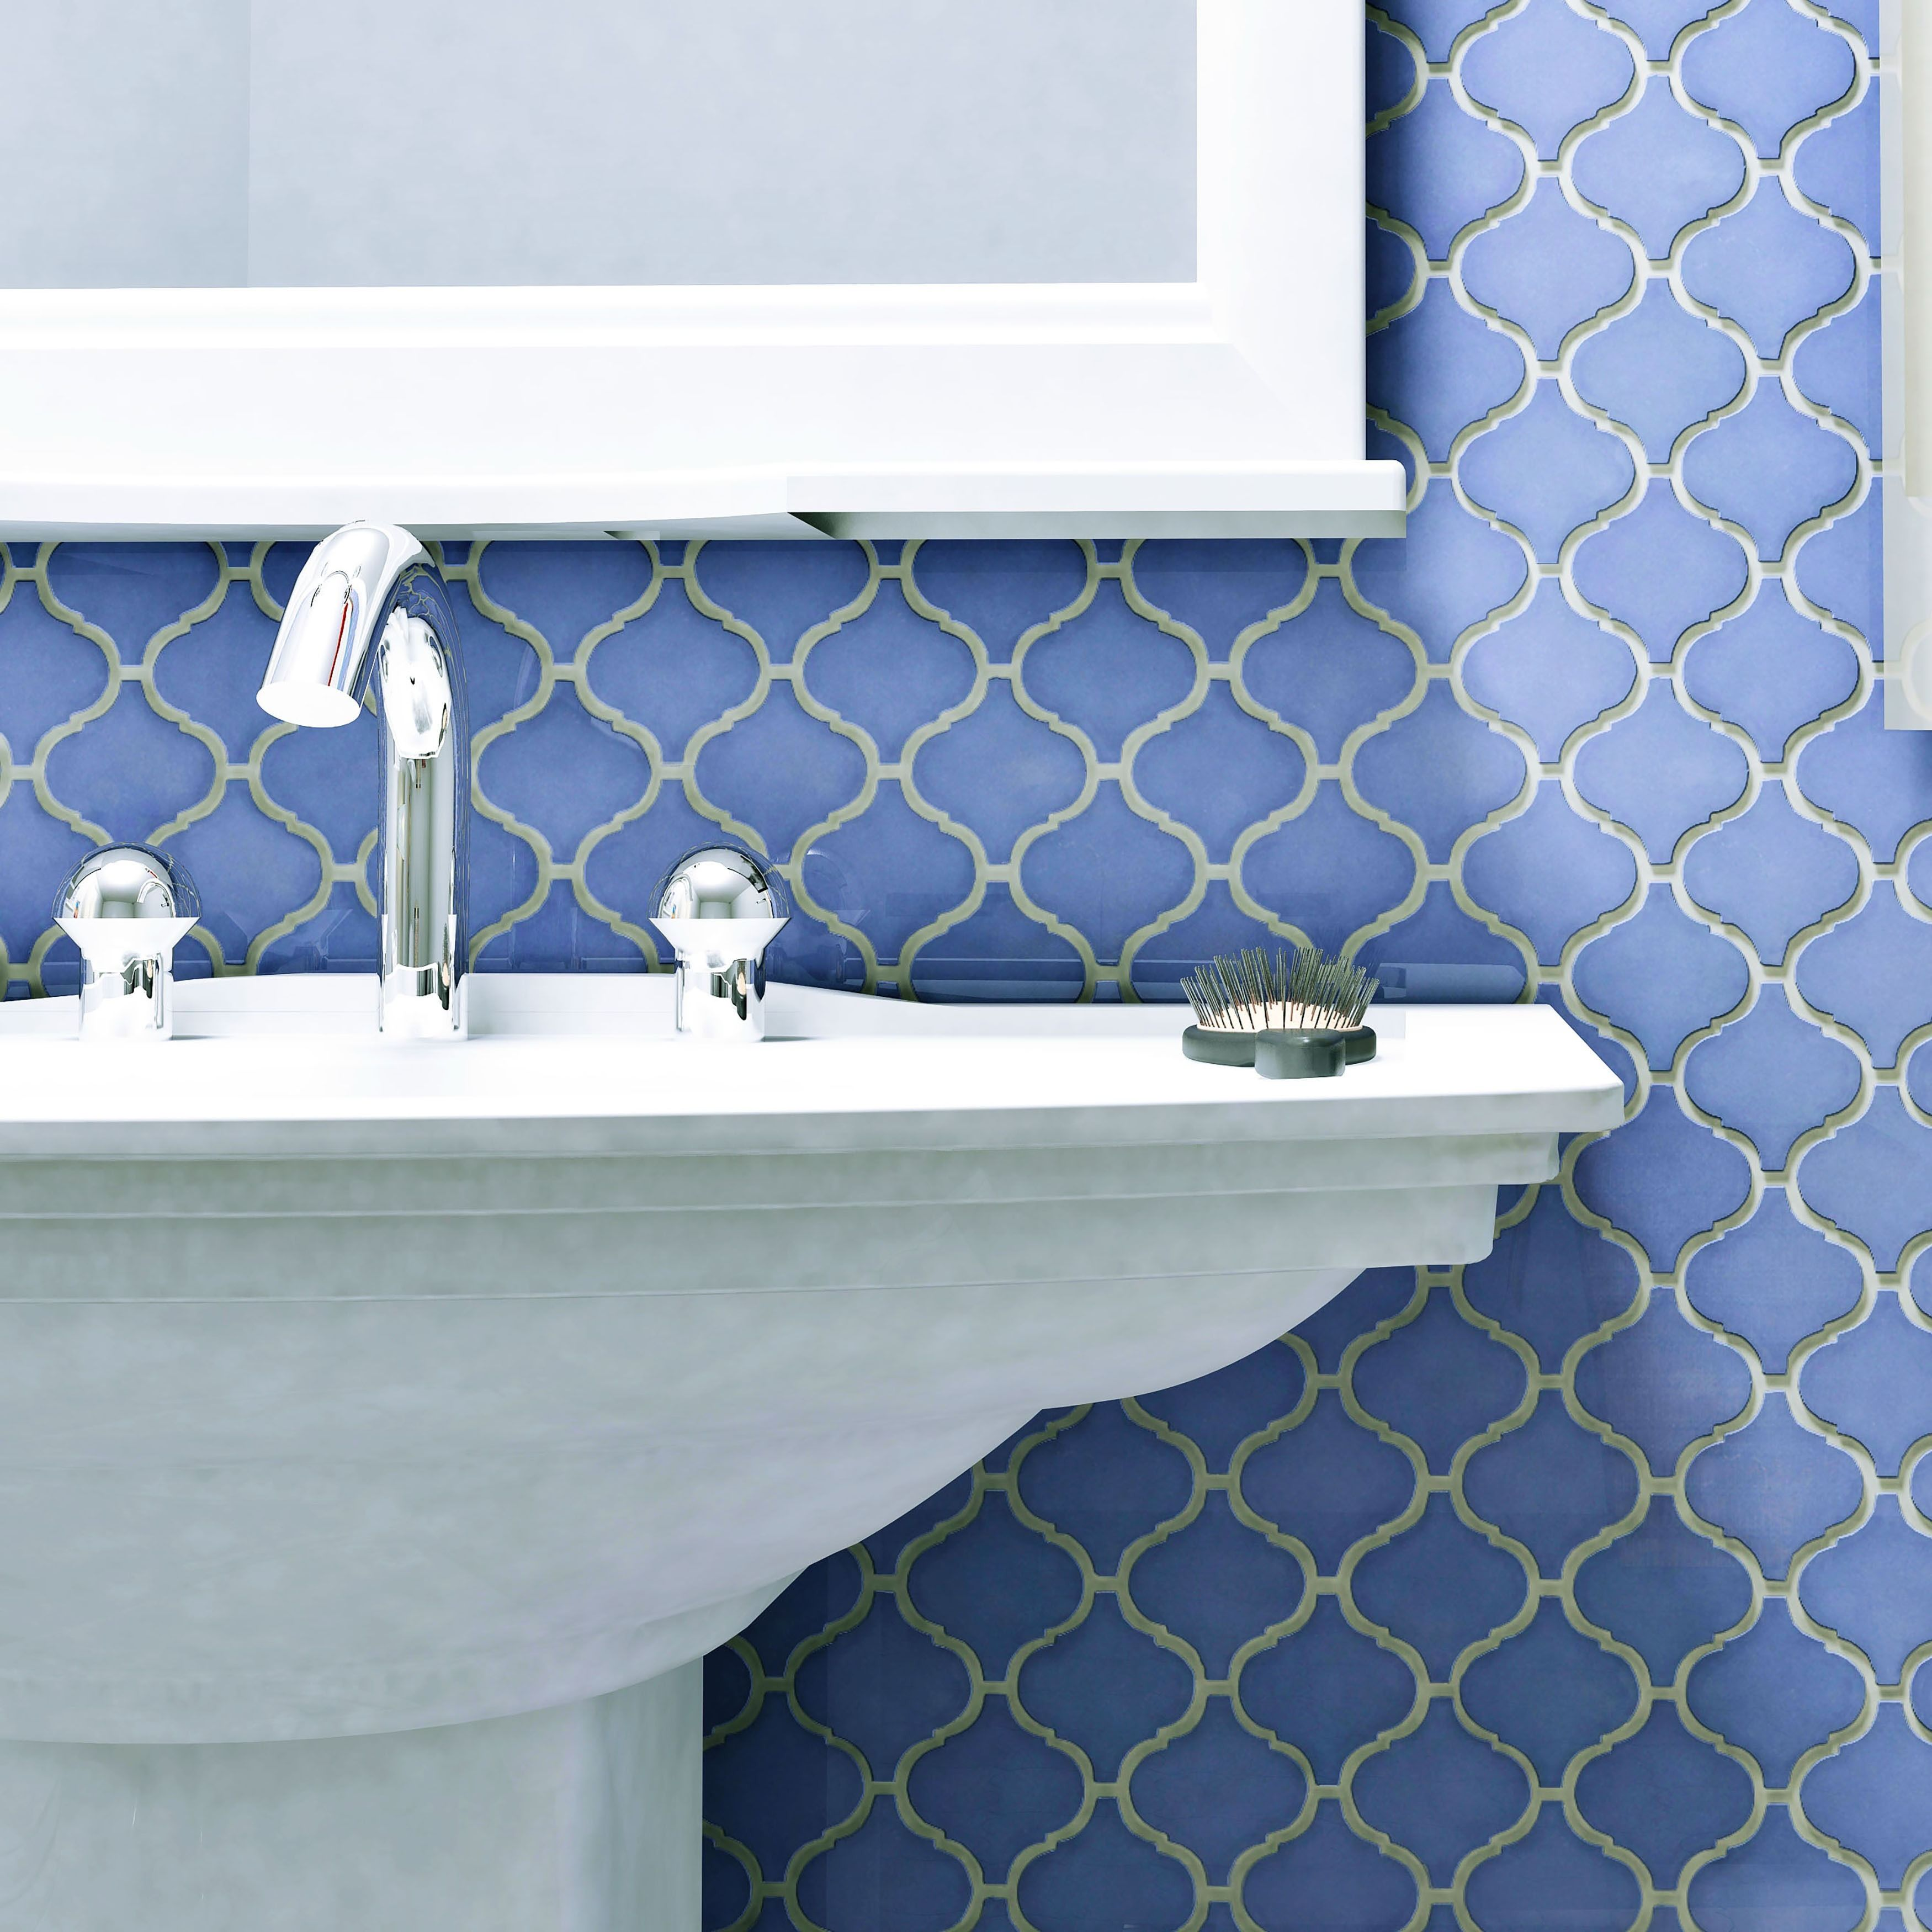 SomerTile 9.75x10.75-inch Victorian Morocco Glossy Blue Porcelain ...